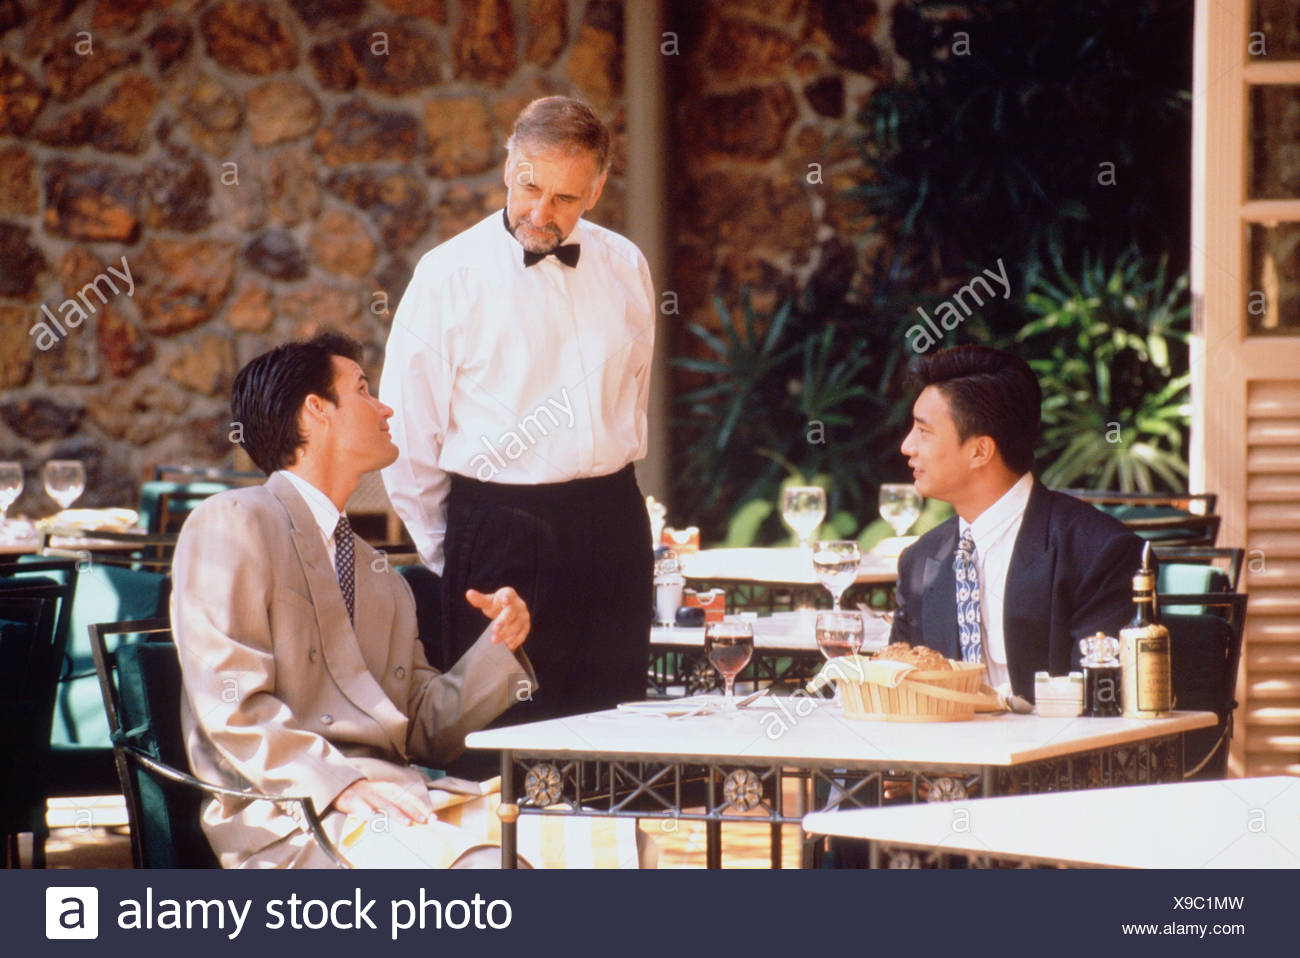 Two men seated at outdoor restaurant table conversing with waiter. Singapore. Stock Photo